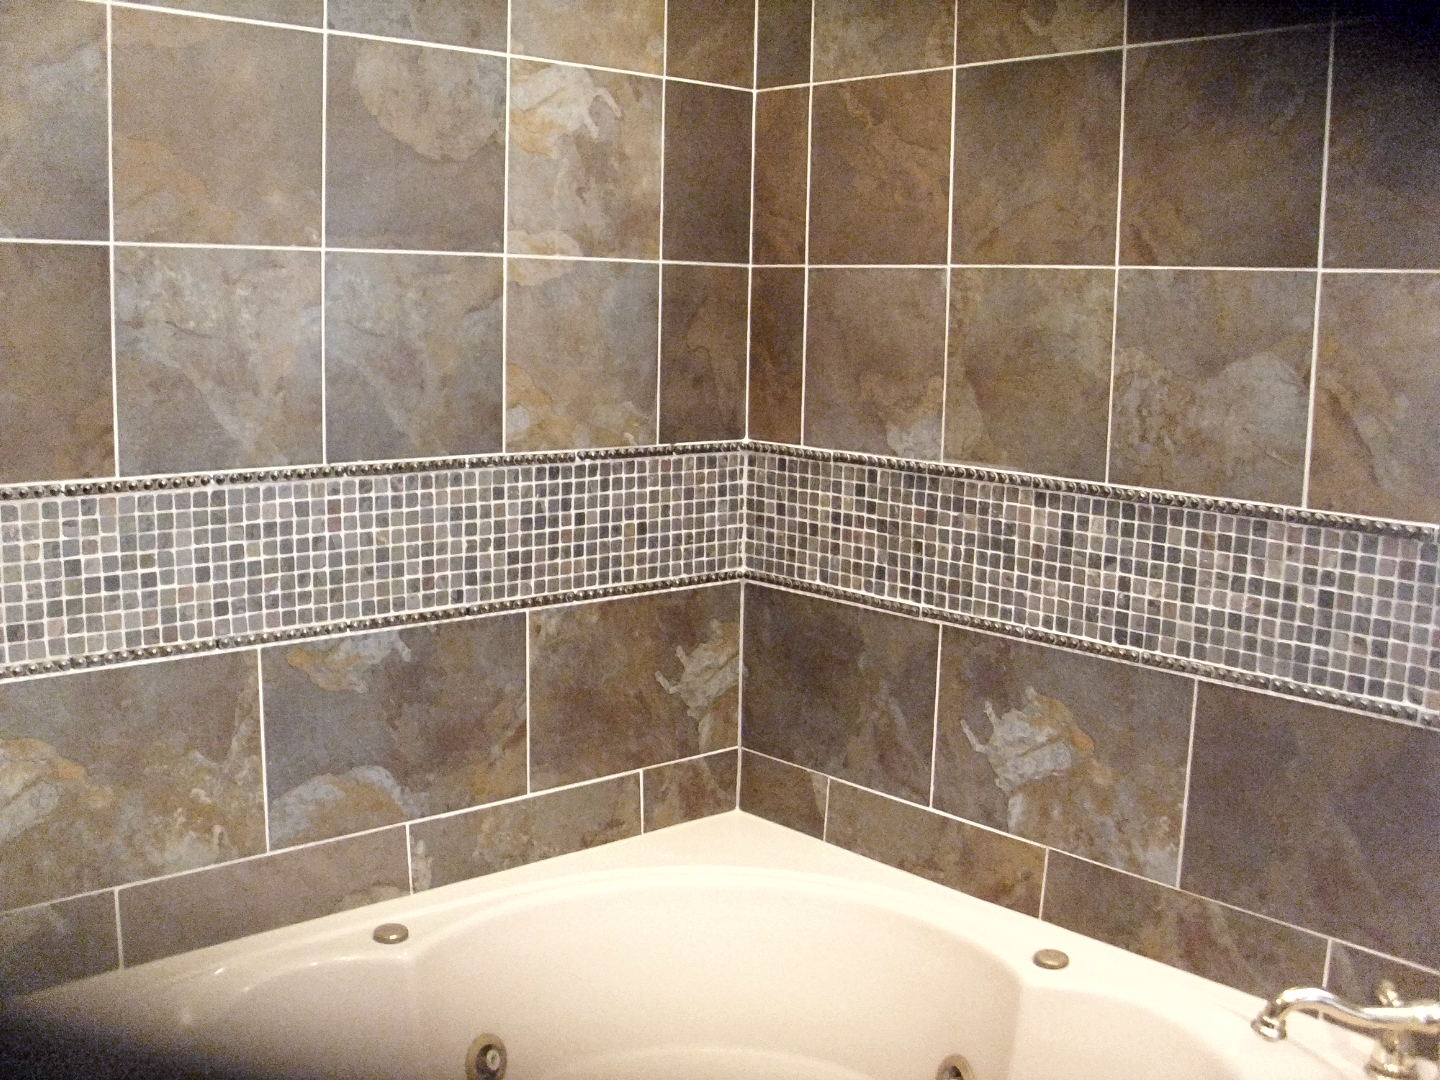 Tile Tub Surround, Shower, & Vanity Backsplash | Superior Stone ...